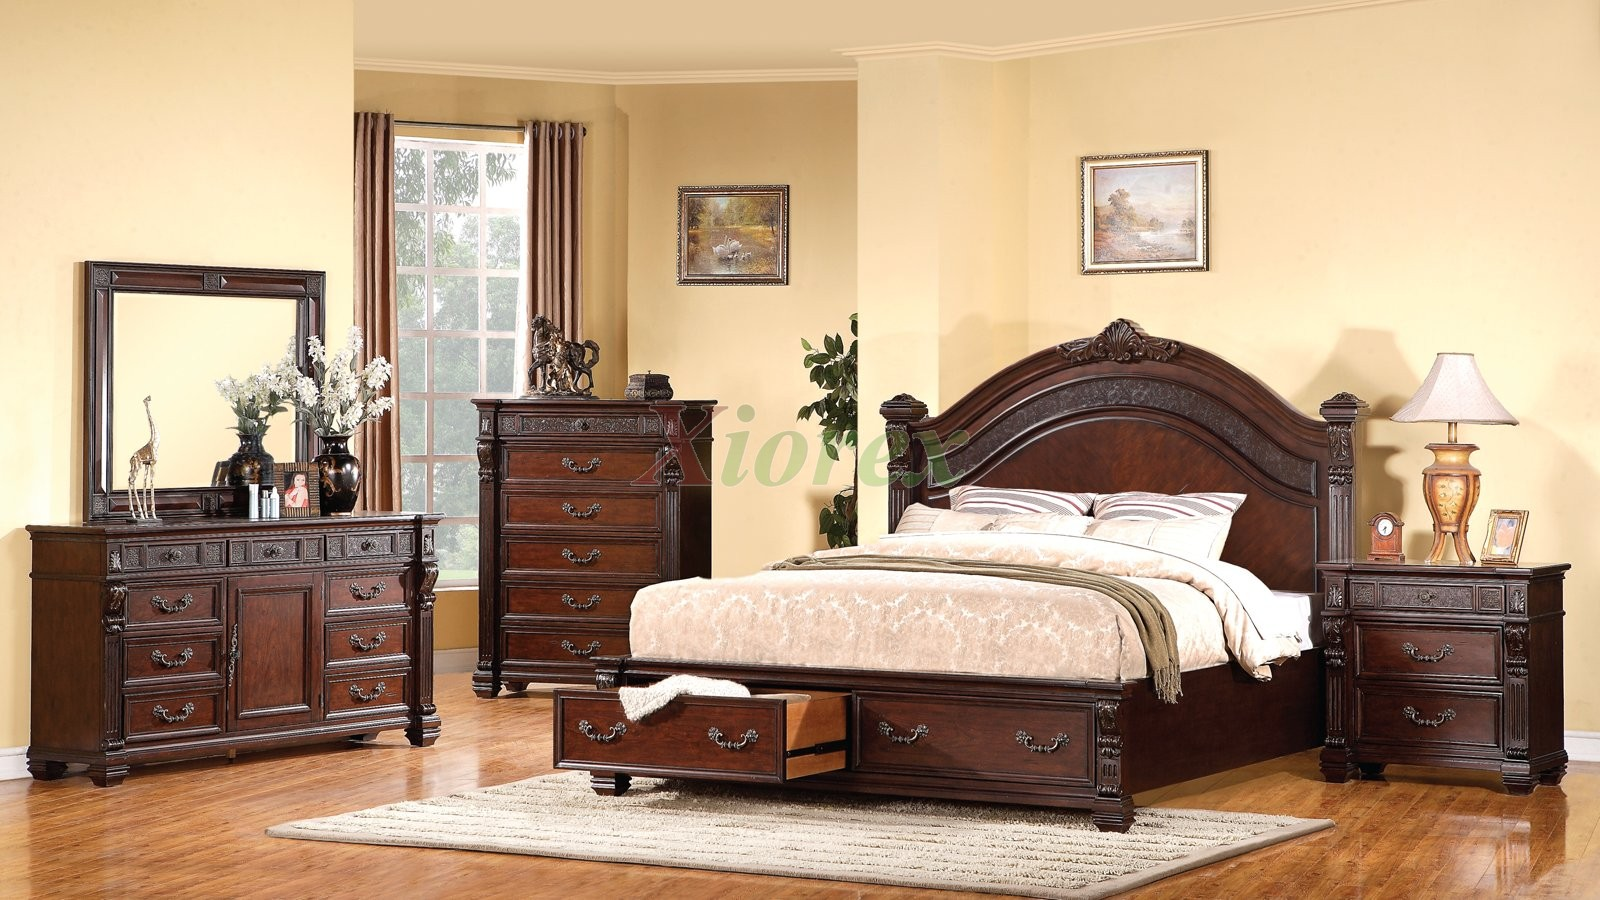 Bedroom furniture storage - Poster Headboard Storage Bedroom Furniture Set 140 Xiorex Not Available In The Us